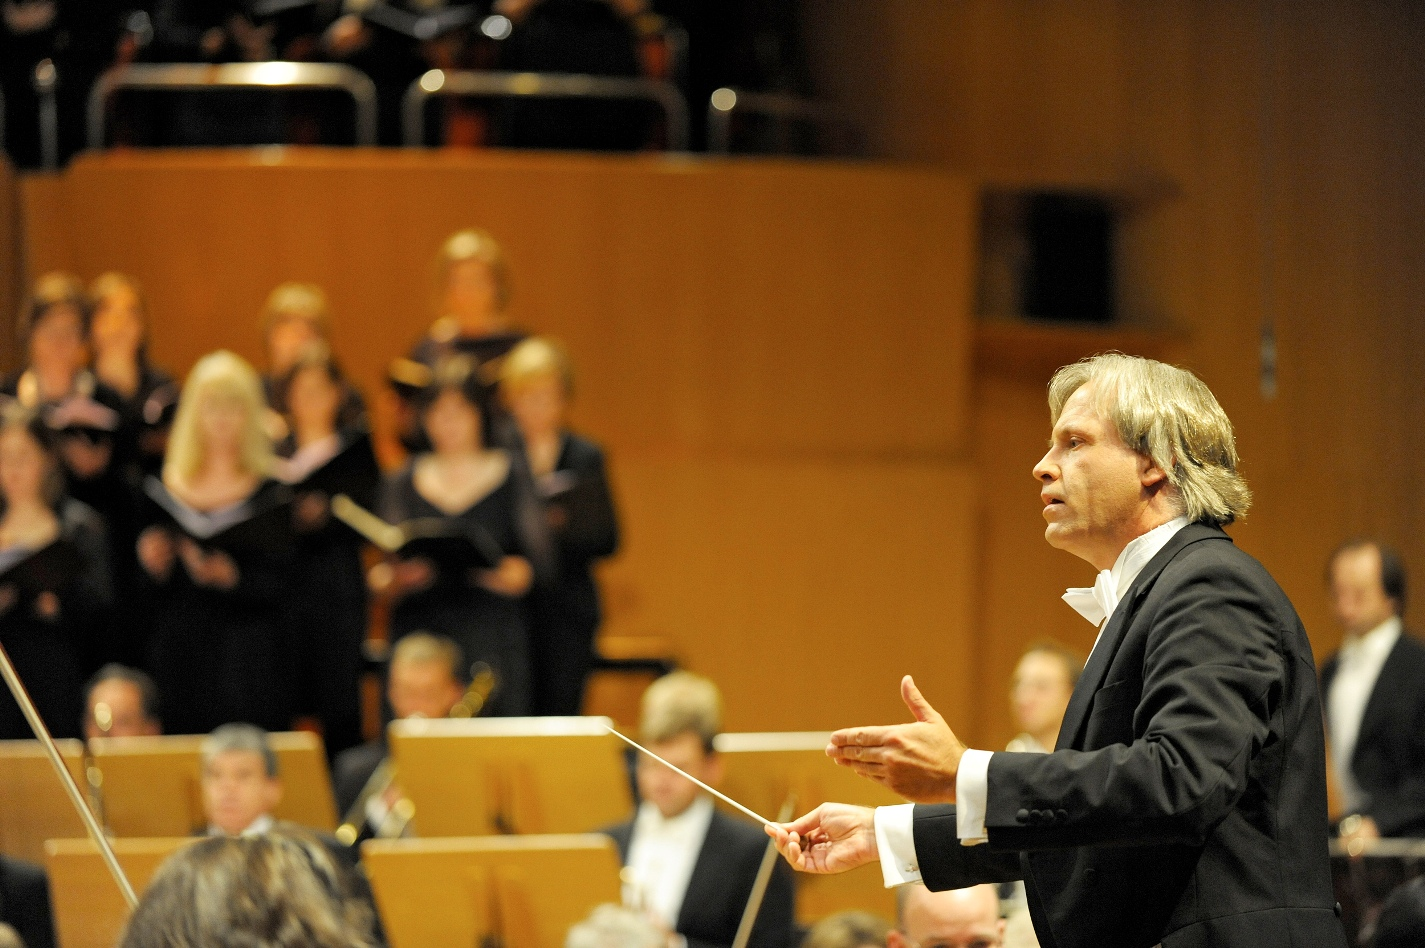 Stenz conducting Mahler 8 in rehearsal